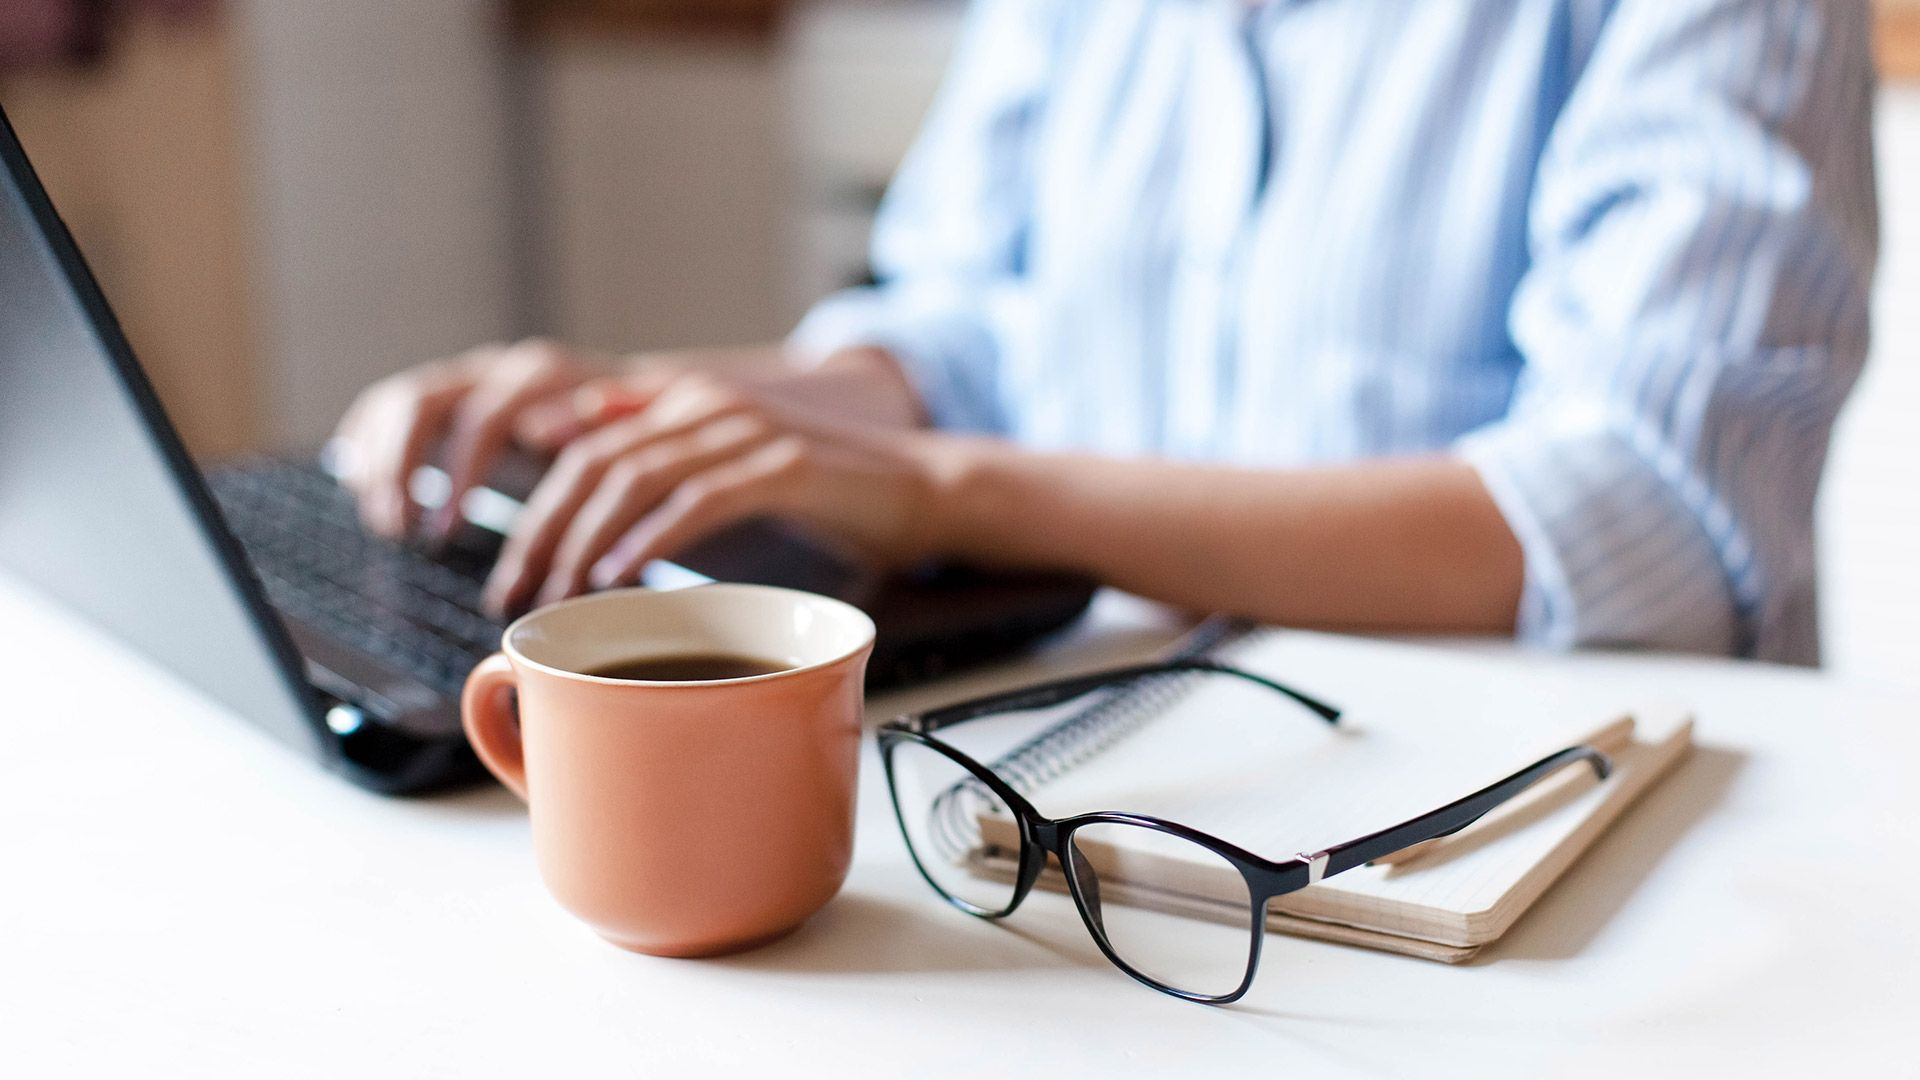 a close up of hands at a laptop with a pair of glasses and a cup of coffee in the foreground